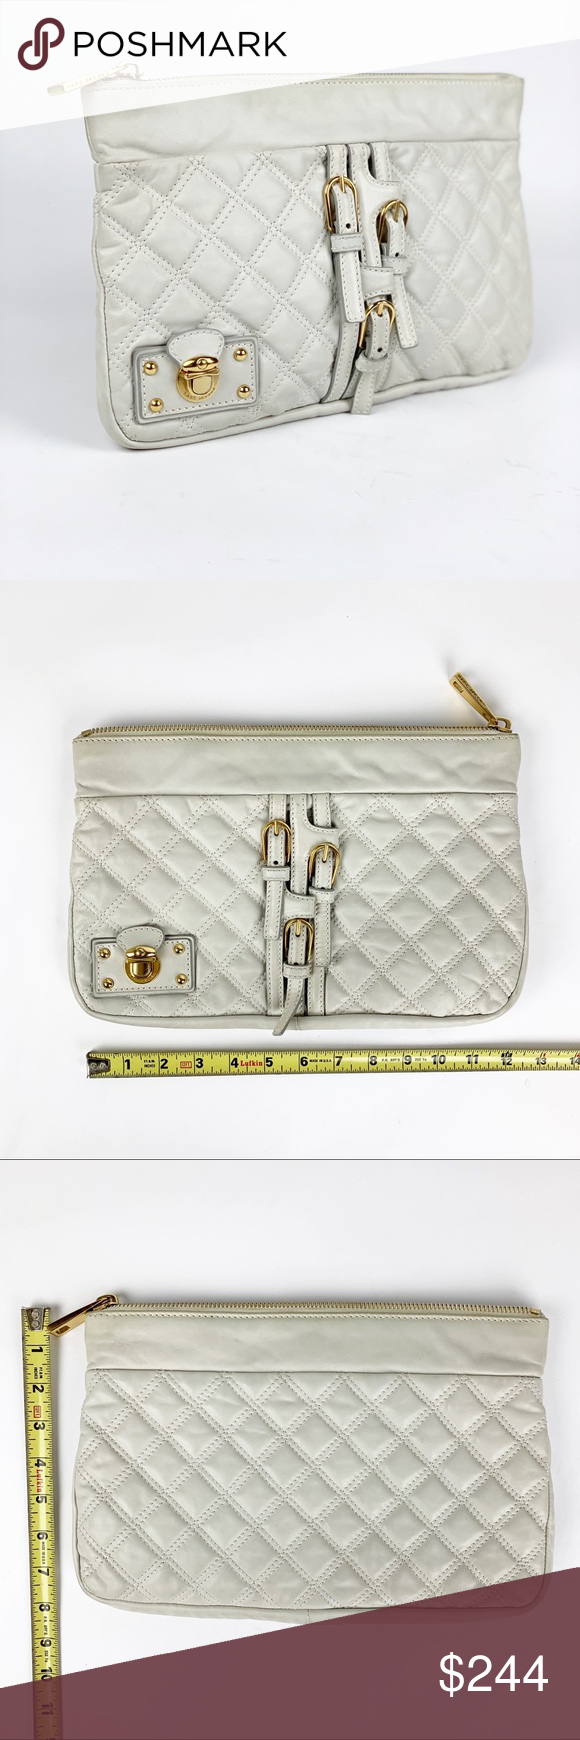 36e65f5dff0d0 Marc Jacobs Large Quilted Ivory Clutch Leather Brand Marc Jacobs Model  ivory quilted leather clutch Color